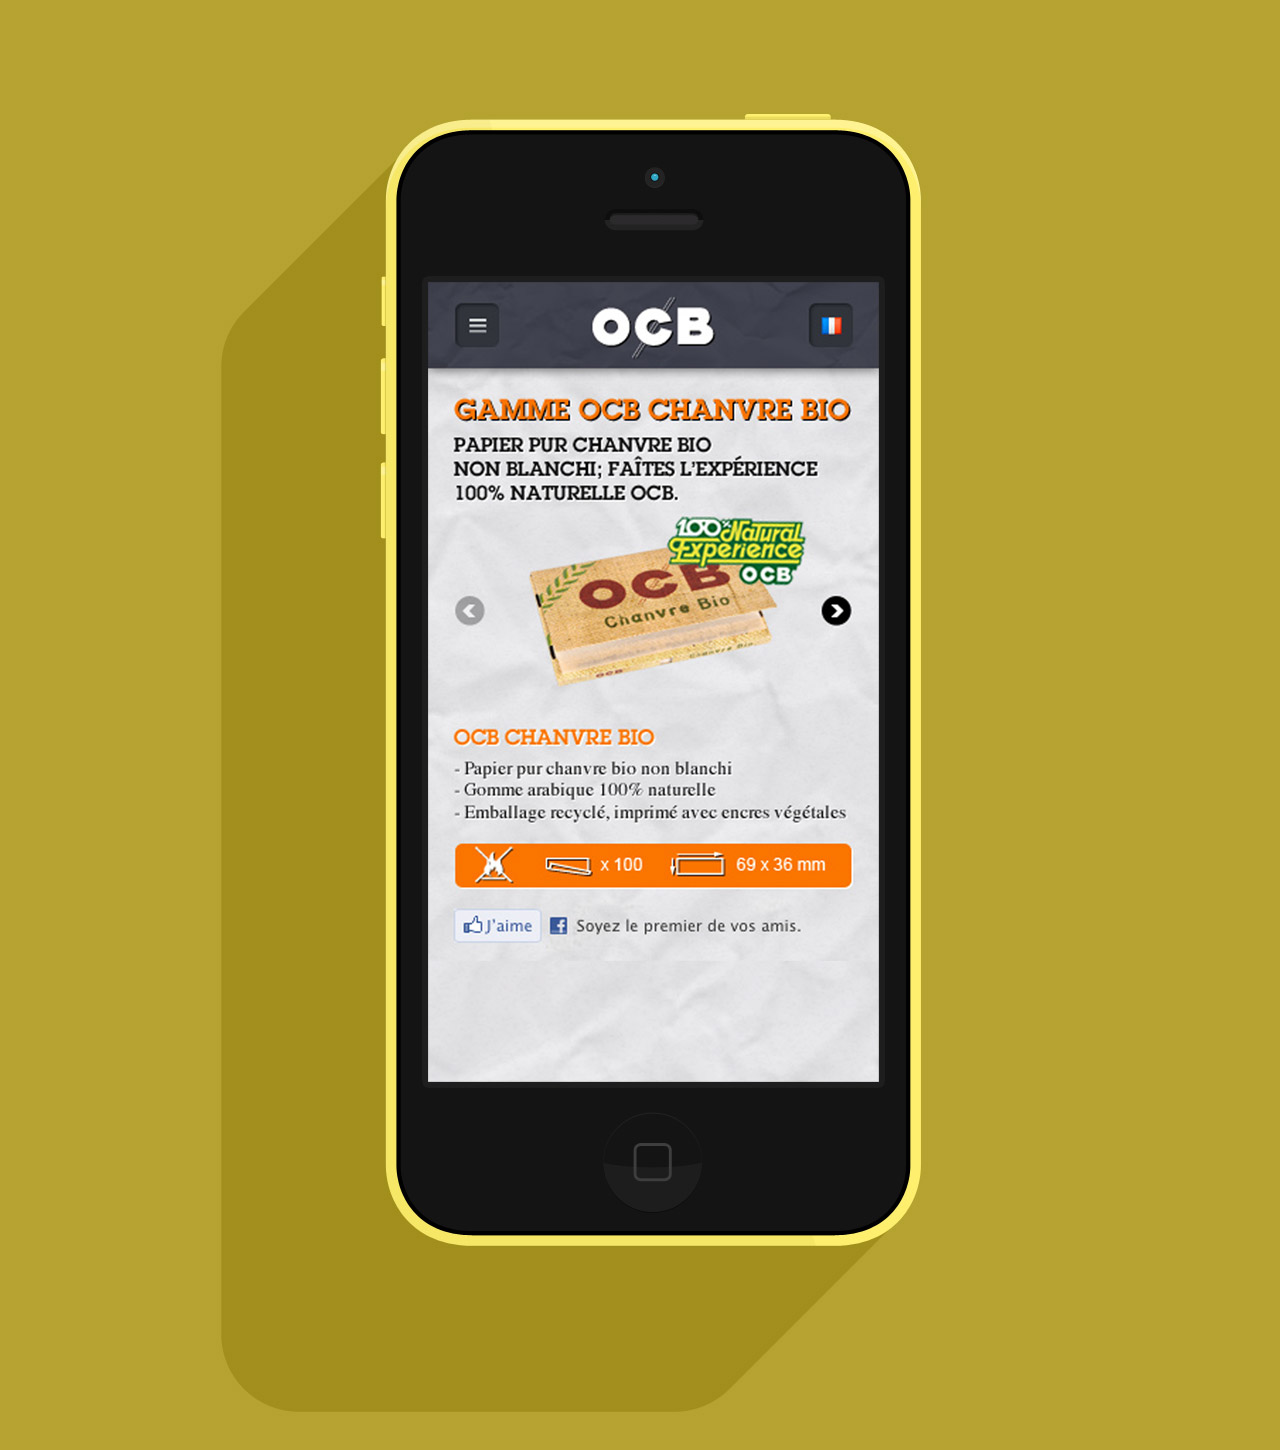 ocb-site-mobile-site-internet-ocb-produits-focus-creation-communication-caconcept-alexis-cretin-graphiste